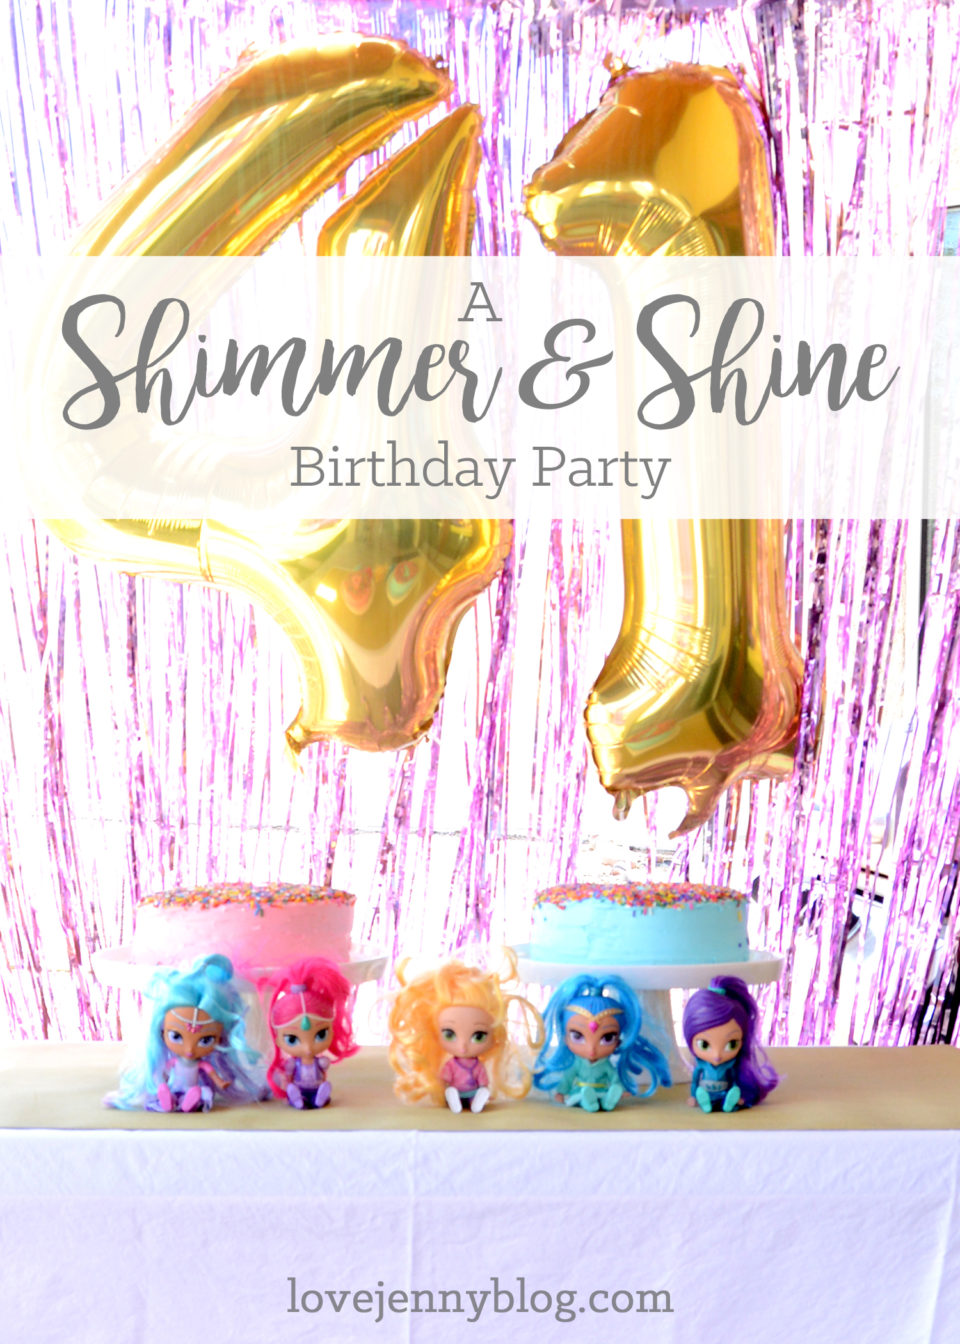 A Shimmer and Shine Birthday Party